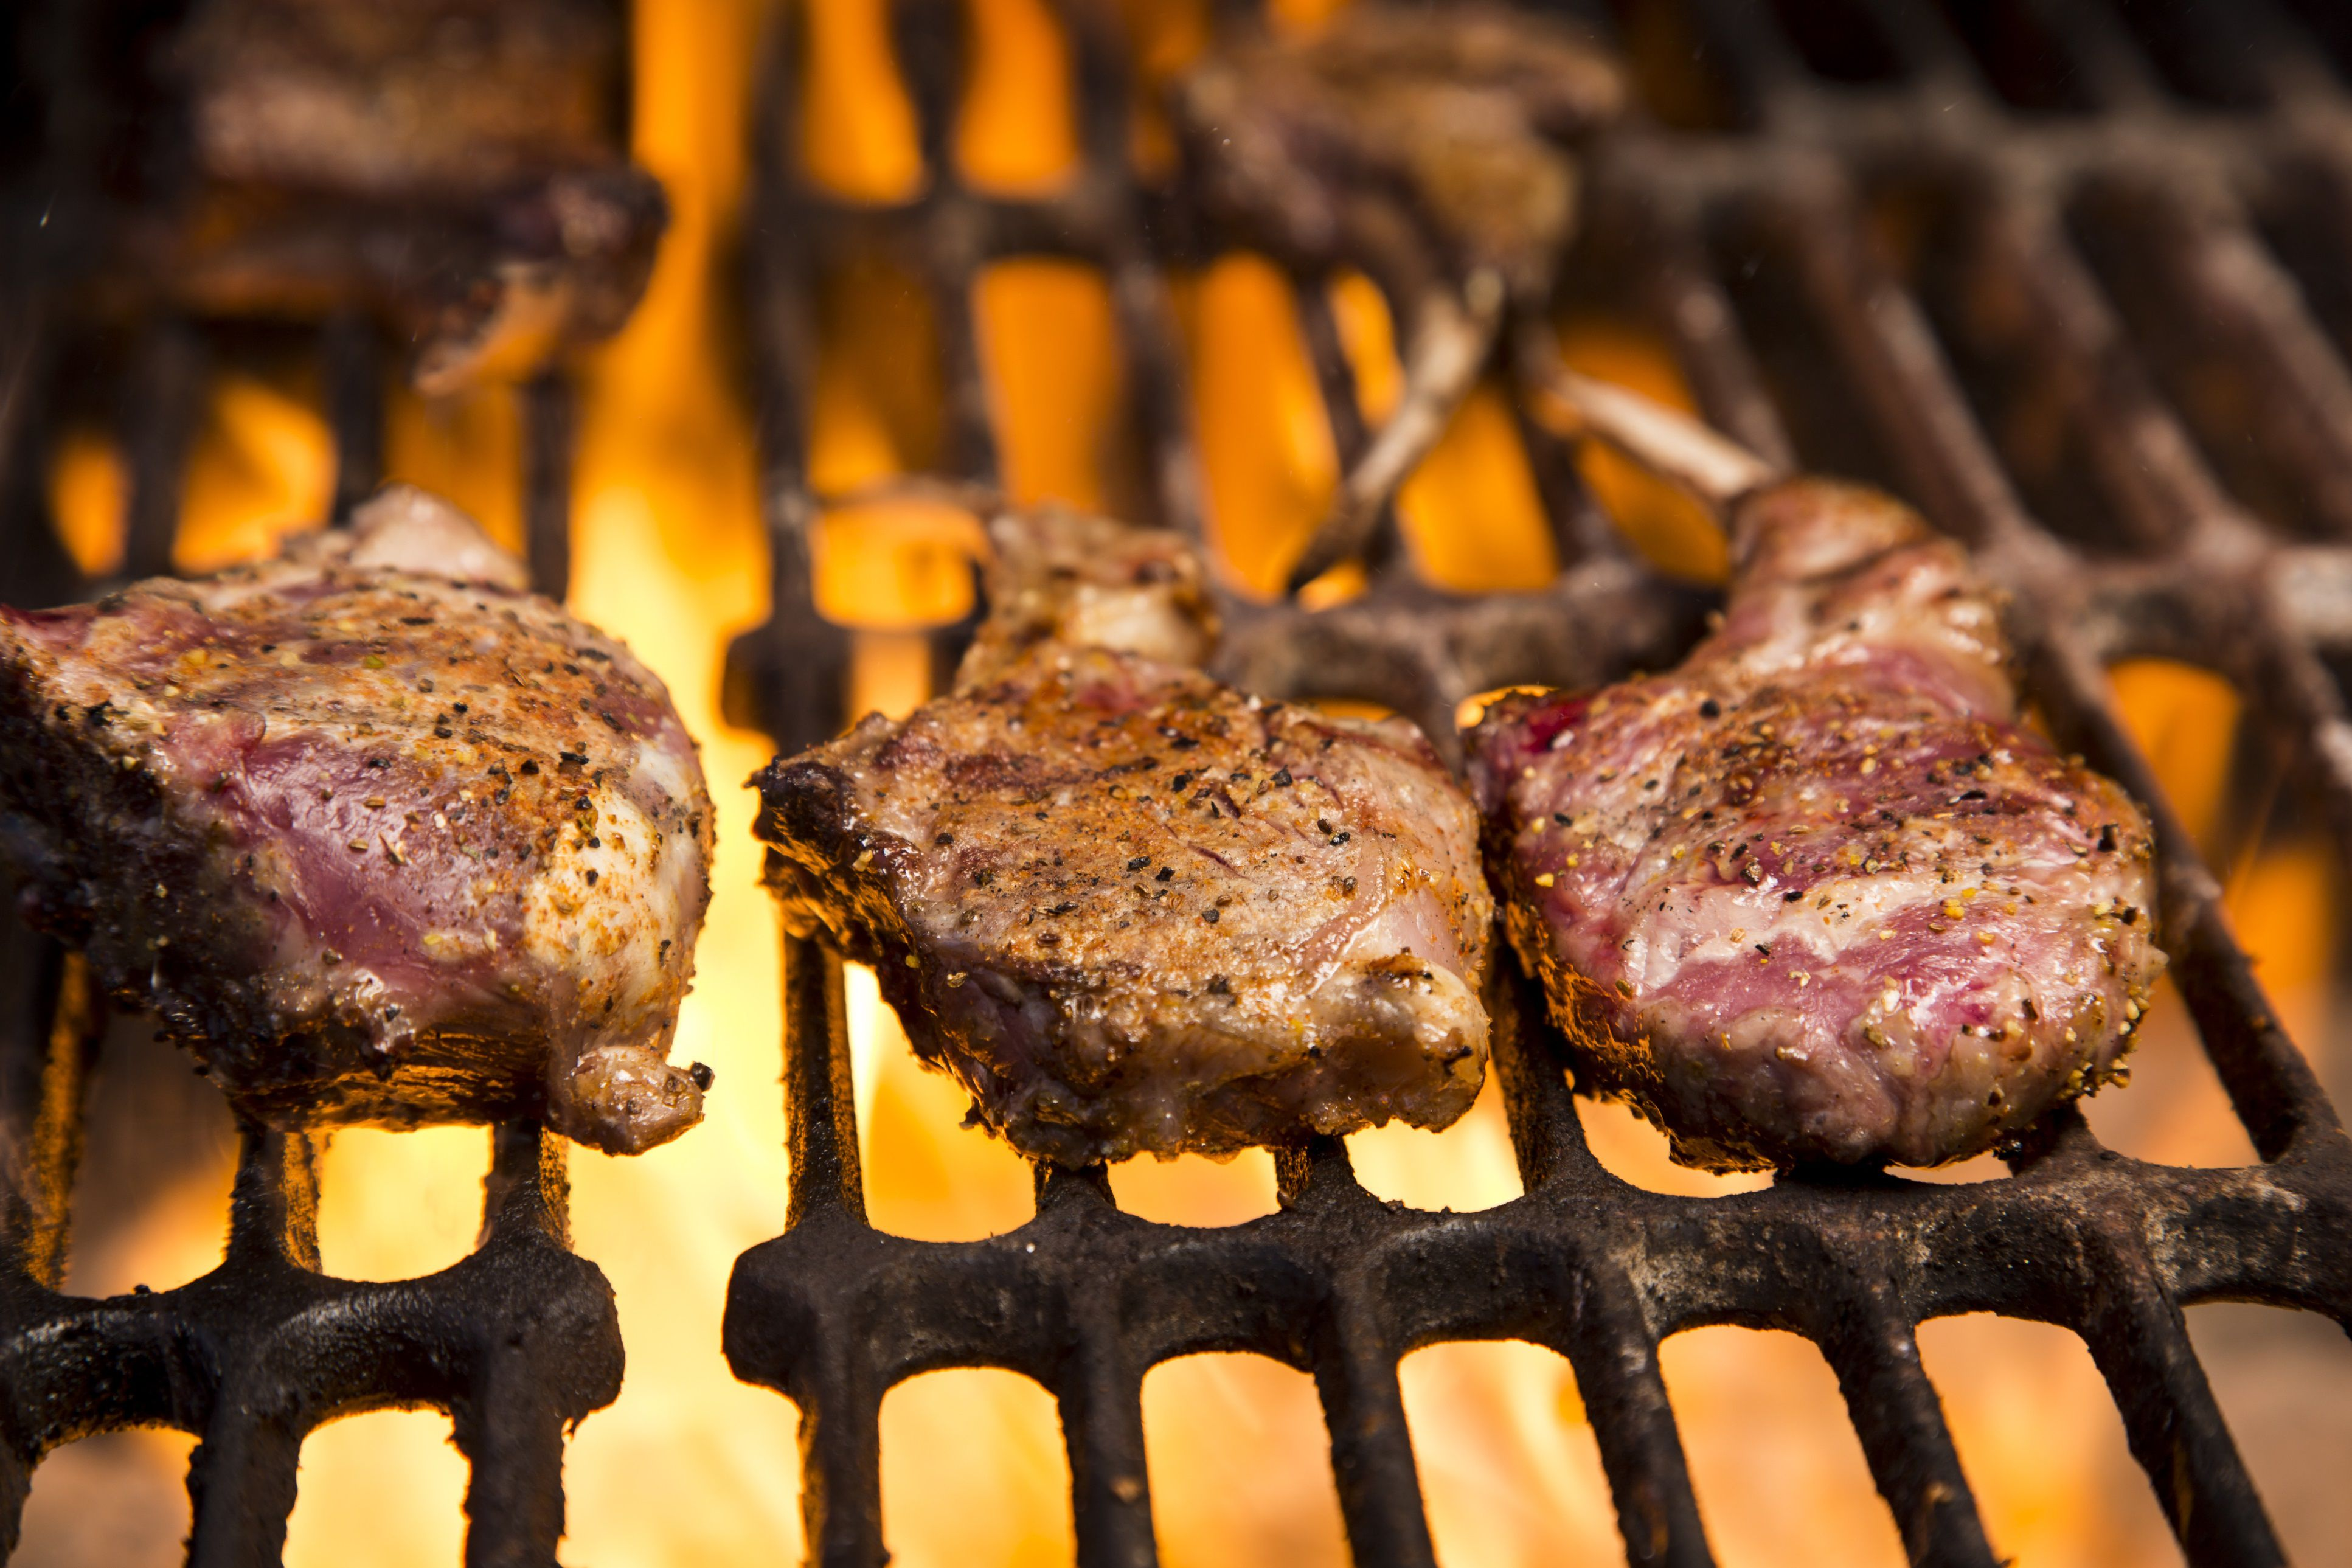 lamb-chops-grilled-getty